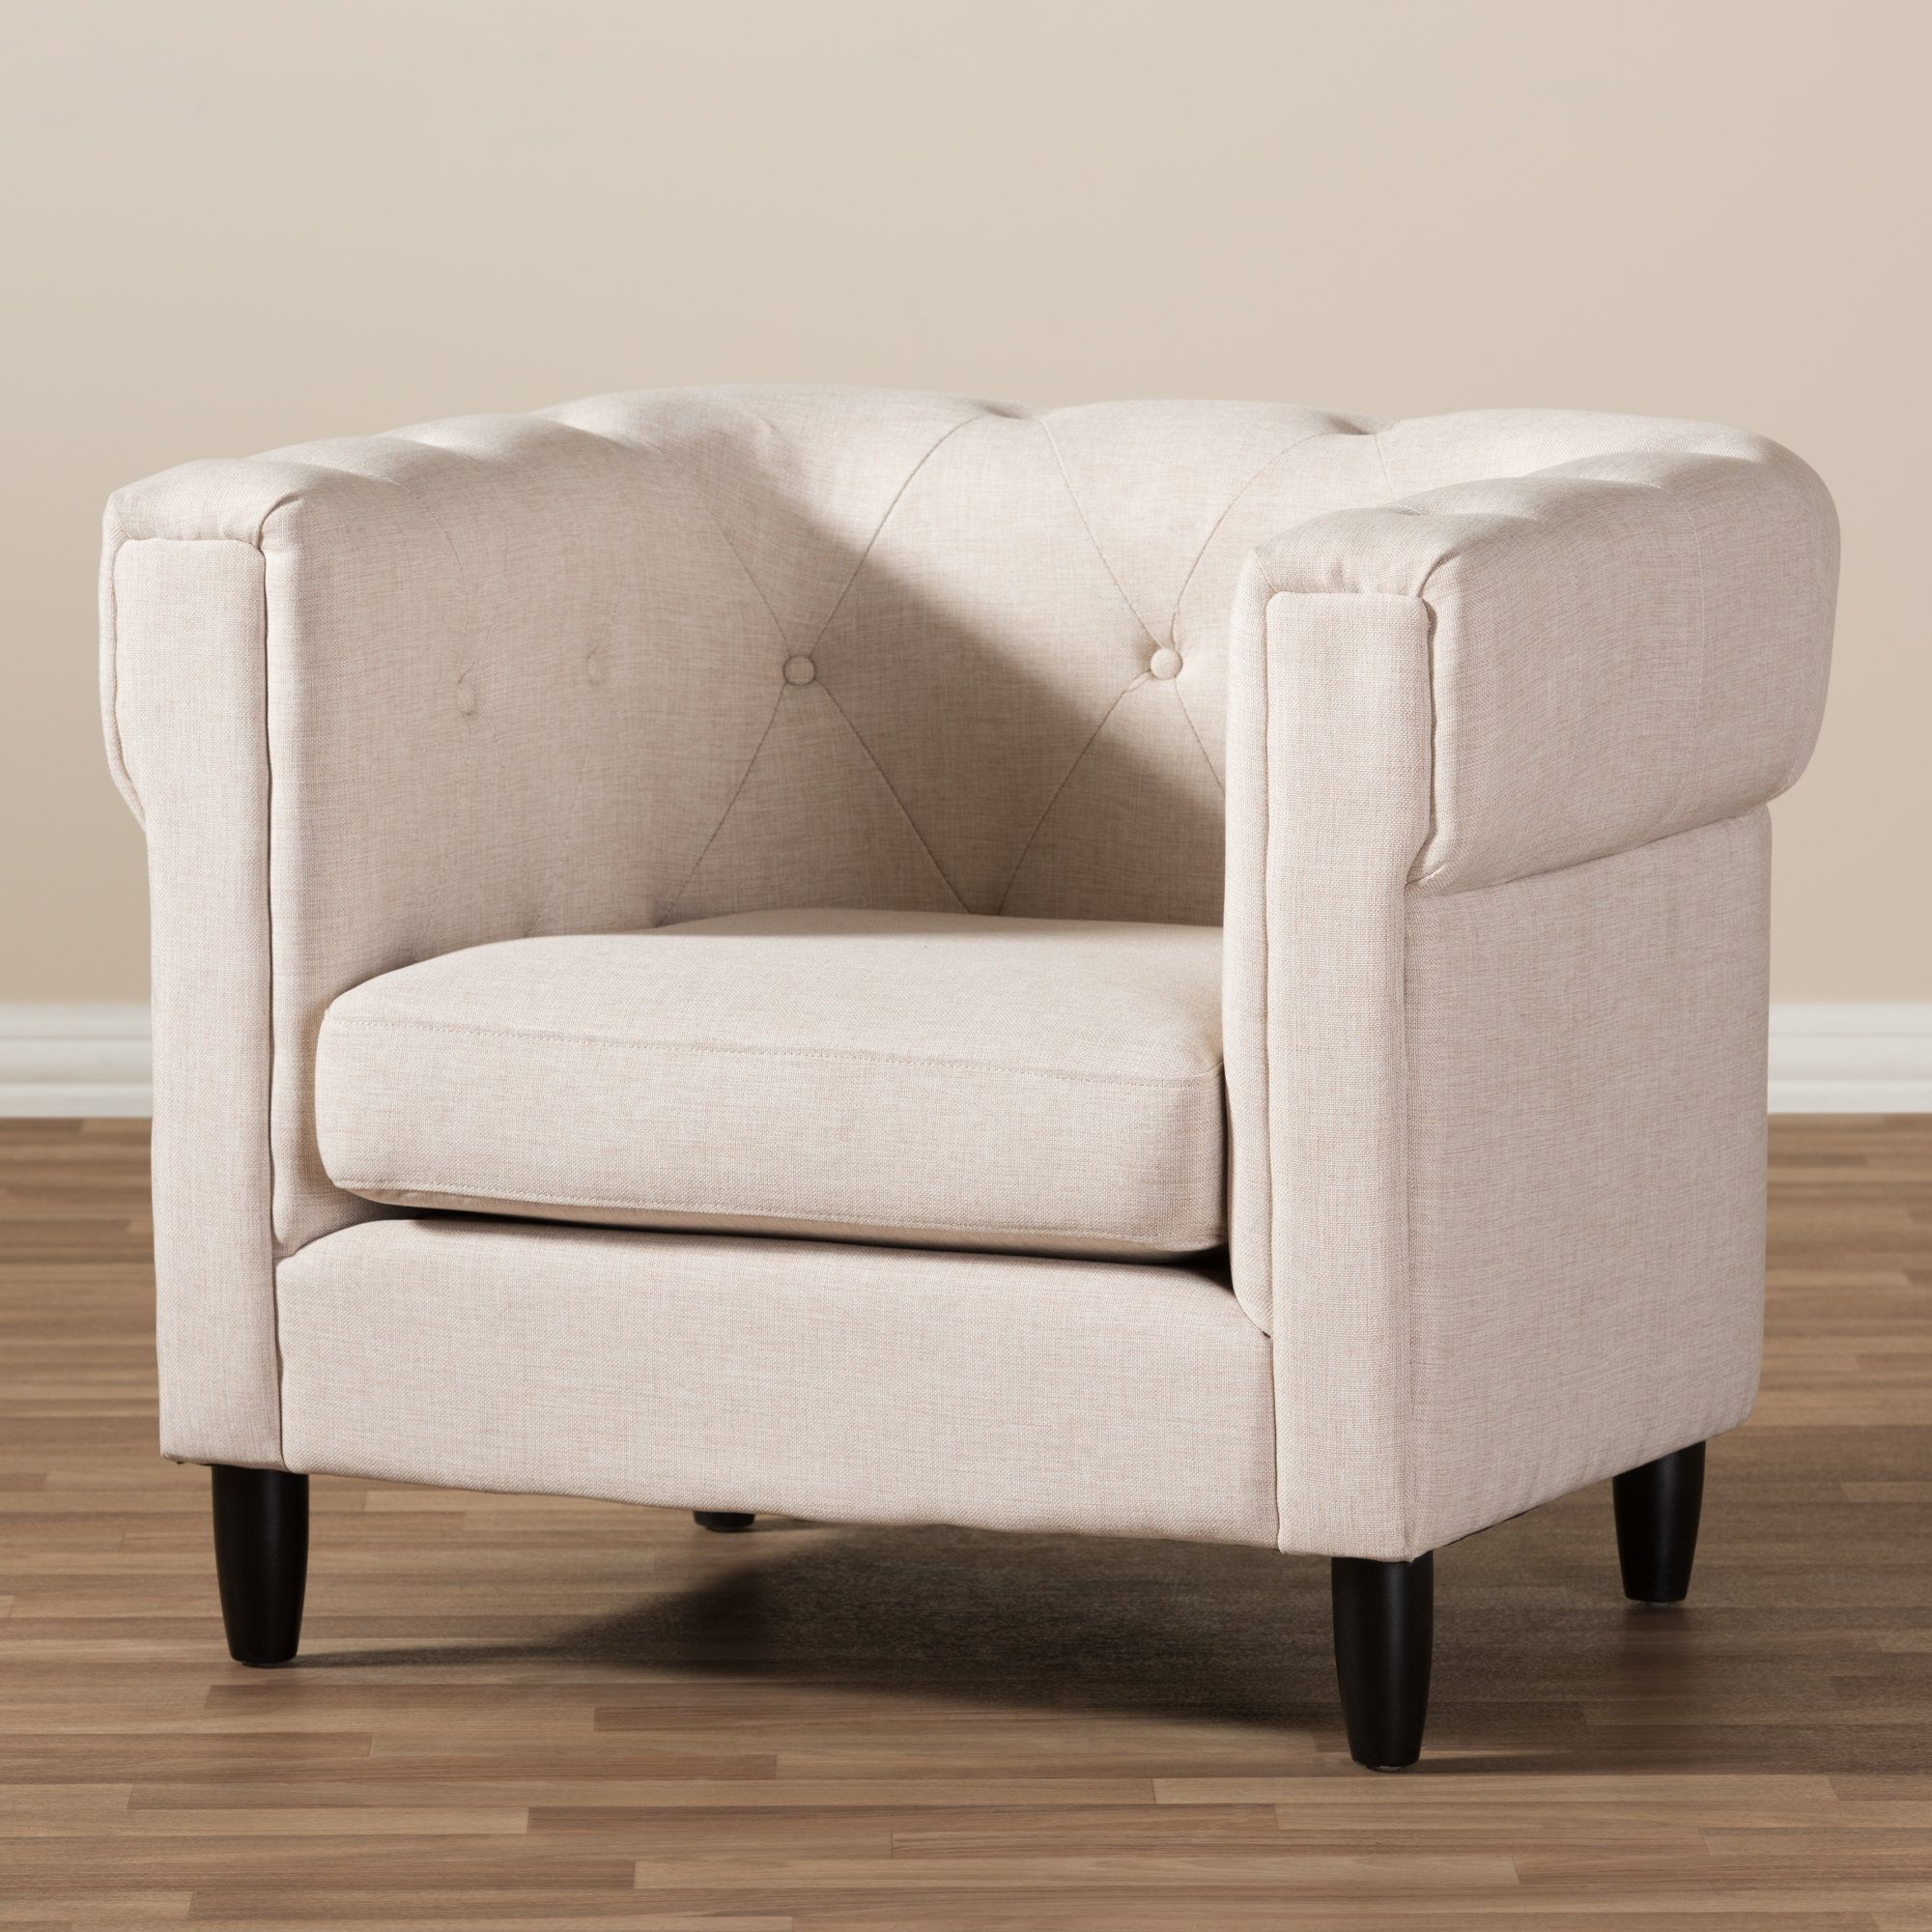 Carnegie Barrel Chair | Barrel Chair, Accent Chairs, Living Within Filton Barrel Chairs (View 11 of 15)